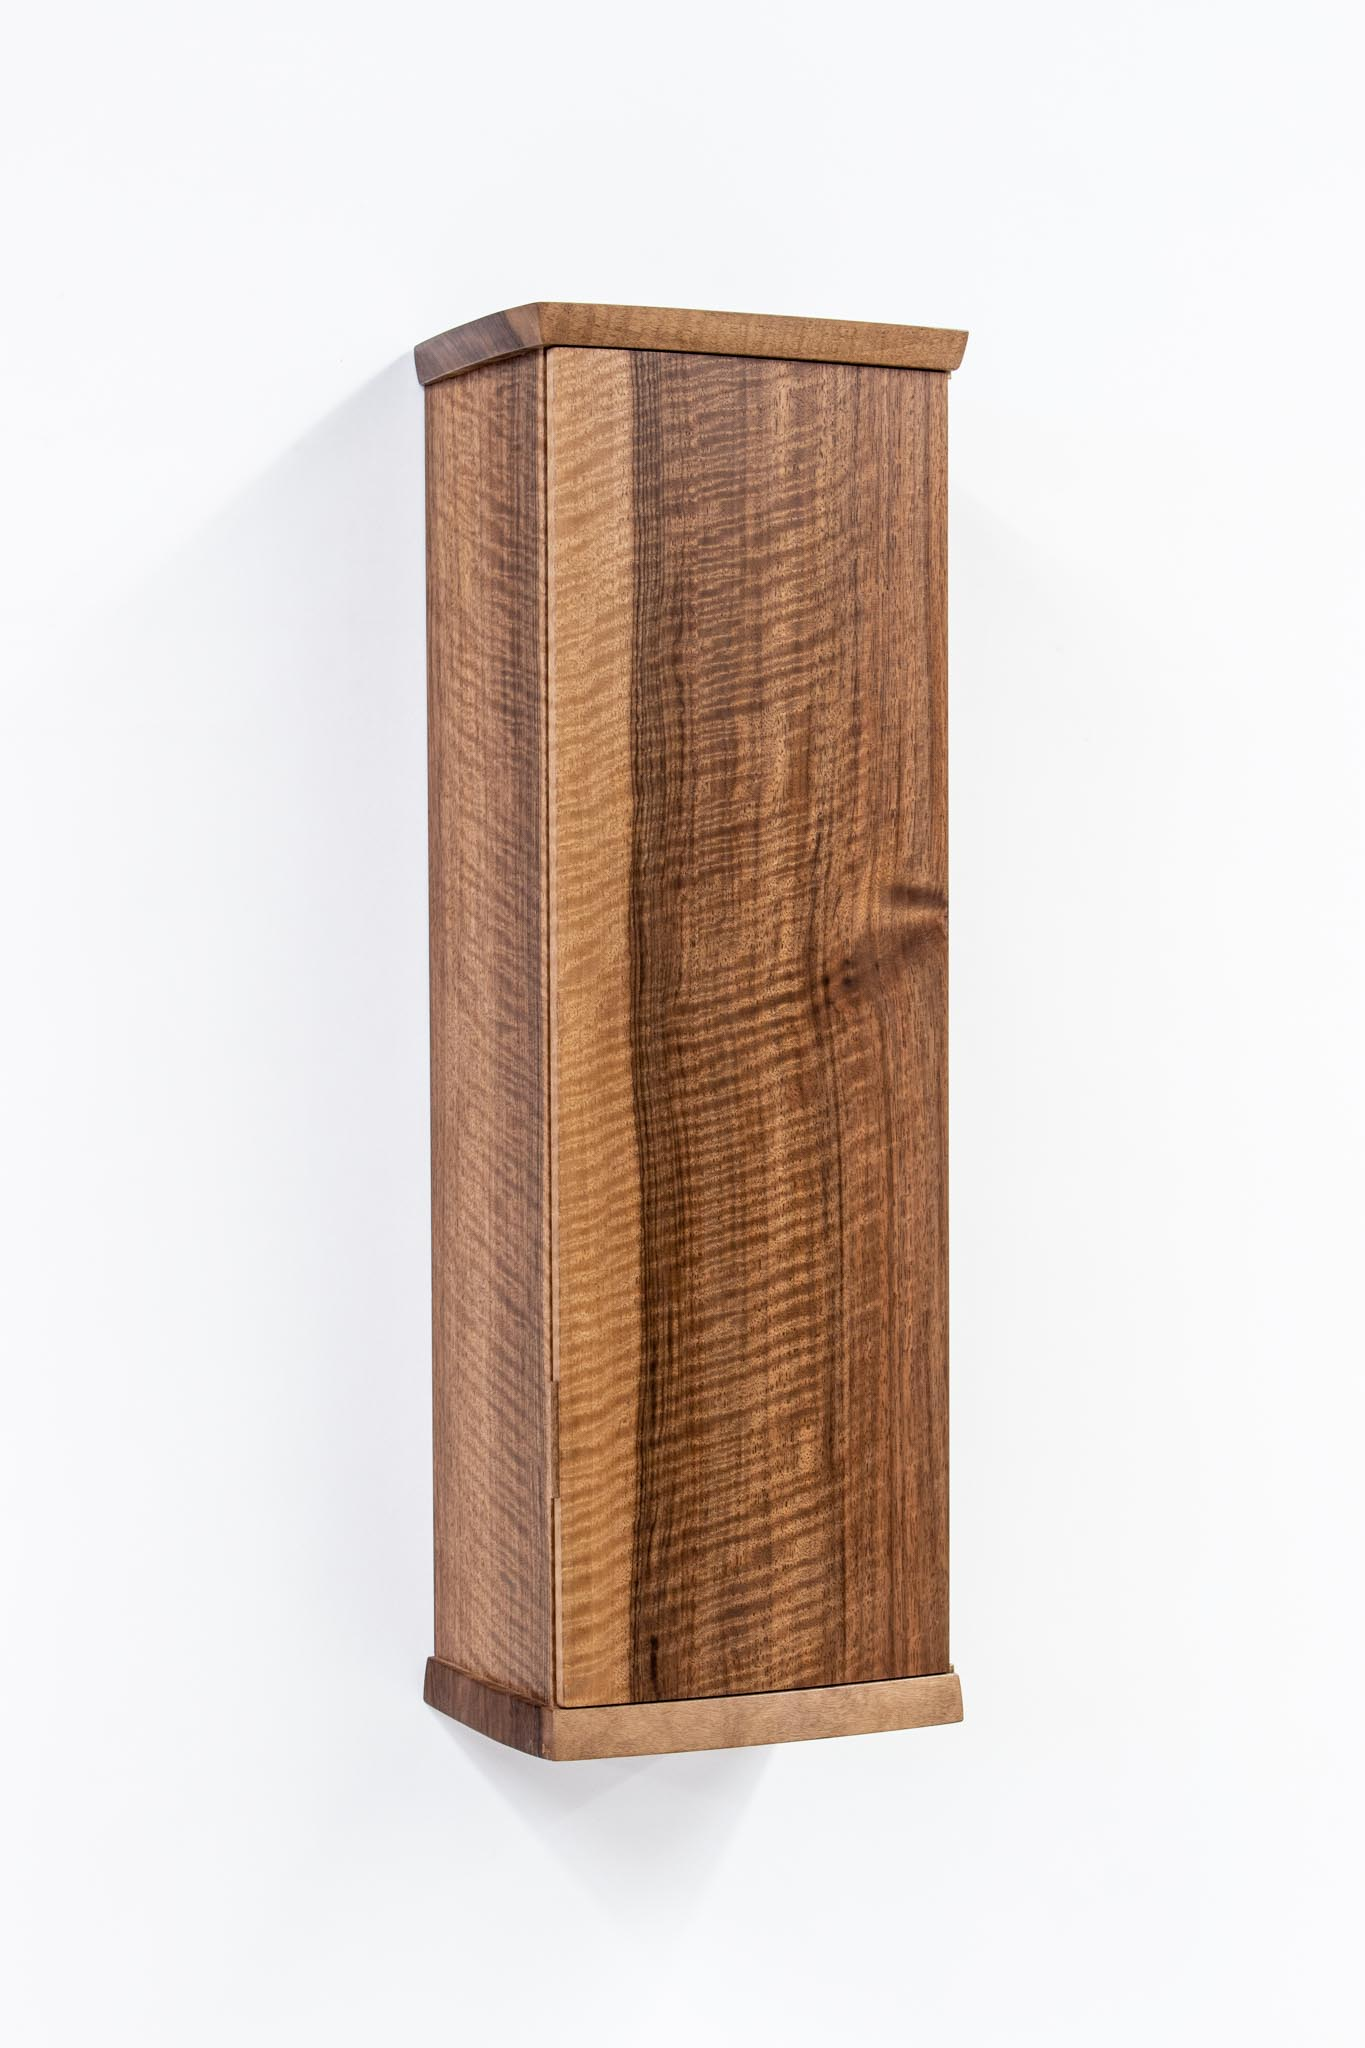 Shay's walnut wall cab